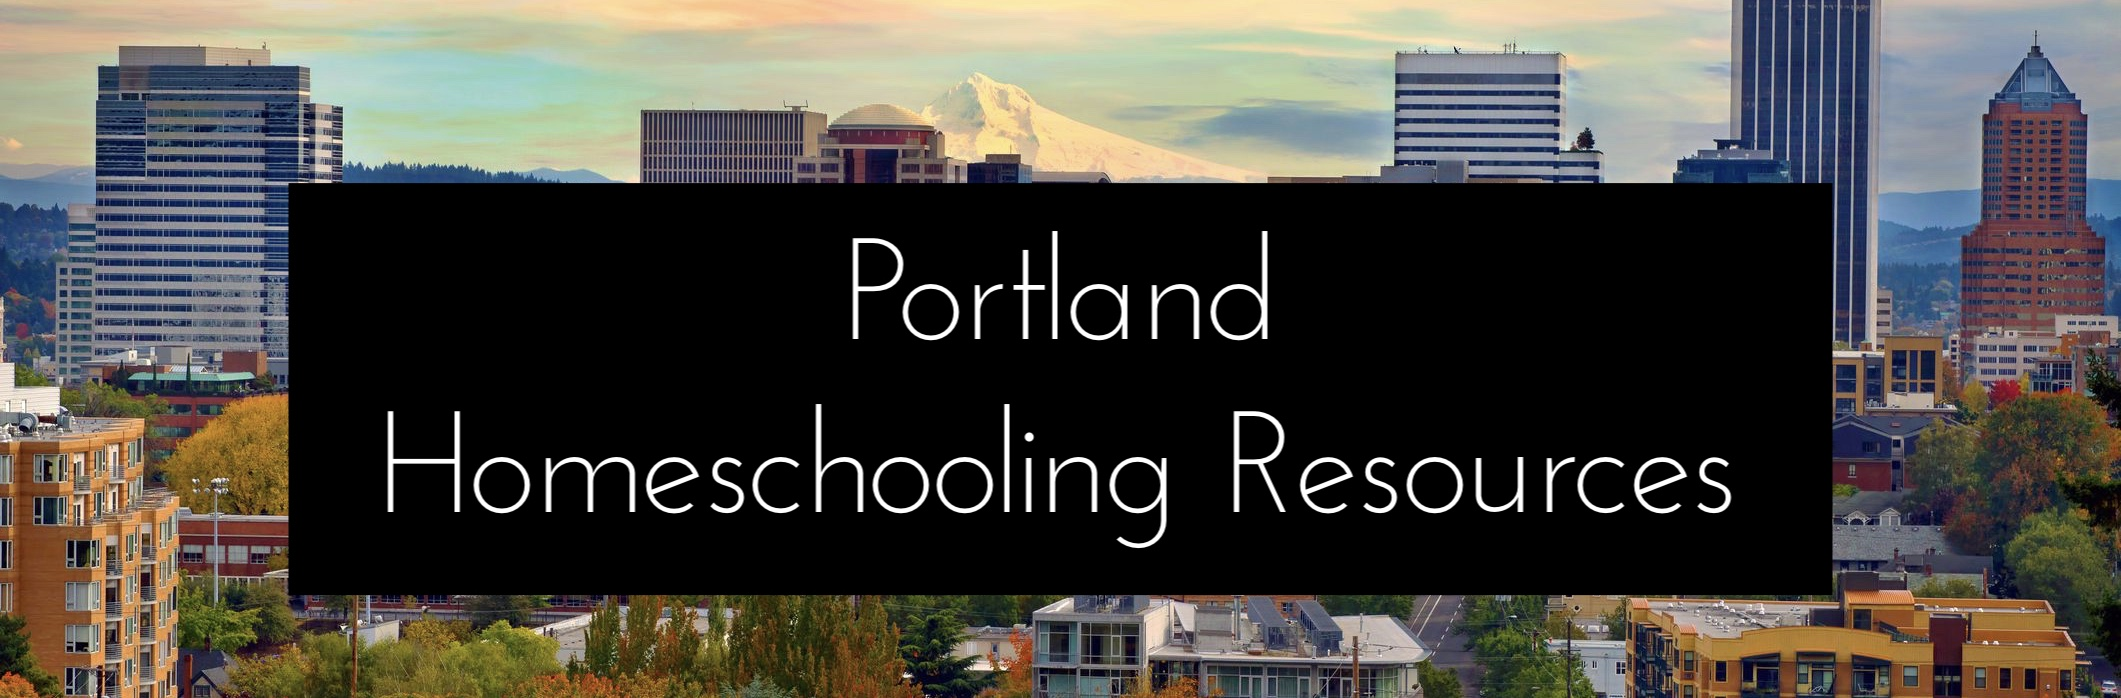 Portland Homeschooling Resources Carolyn Groves